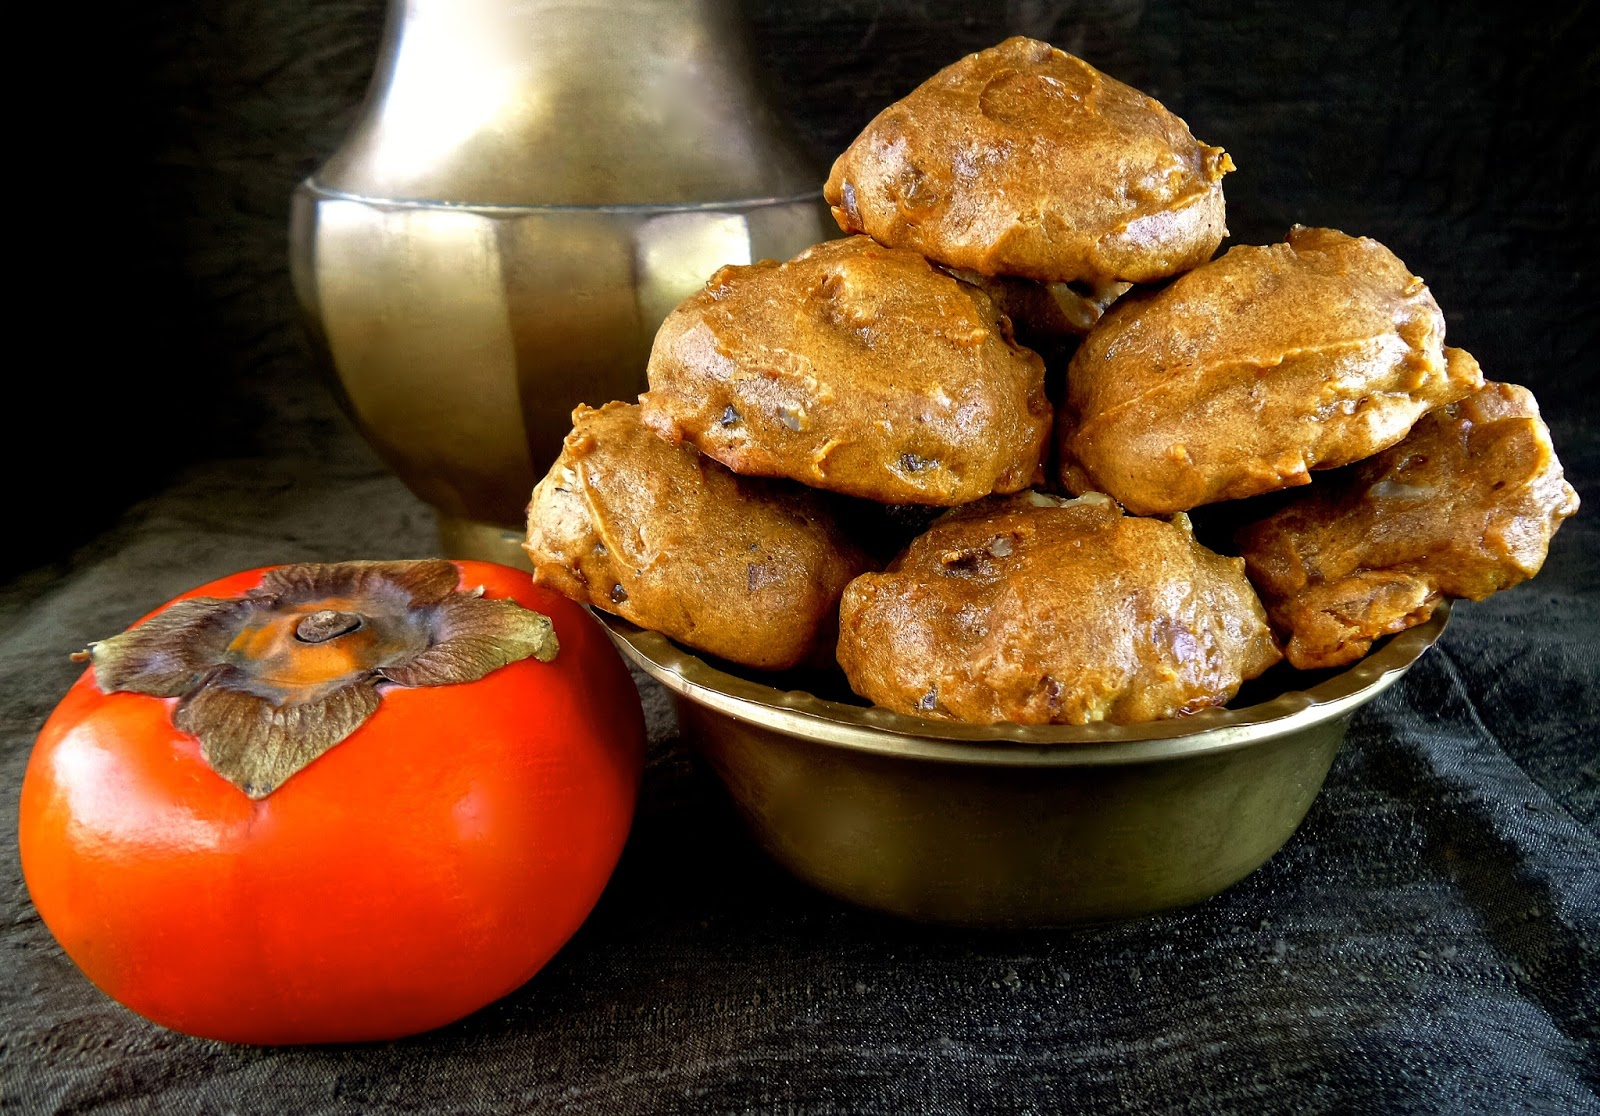 Persimmon cookies recipe spicy soft easy fuyu hachiya nutmeg cinnamon cloves